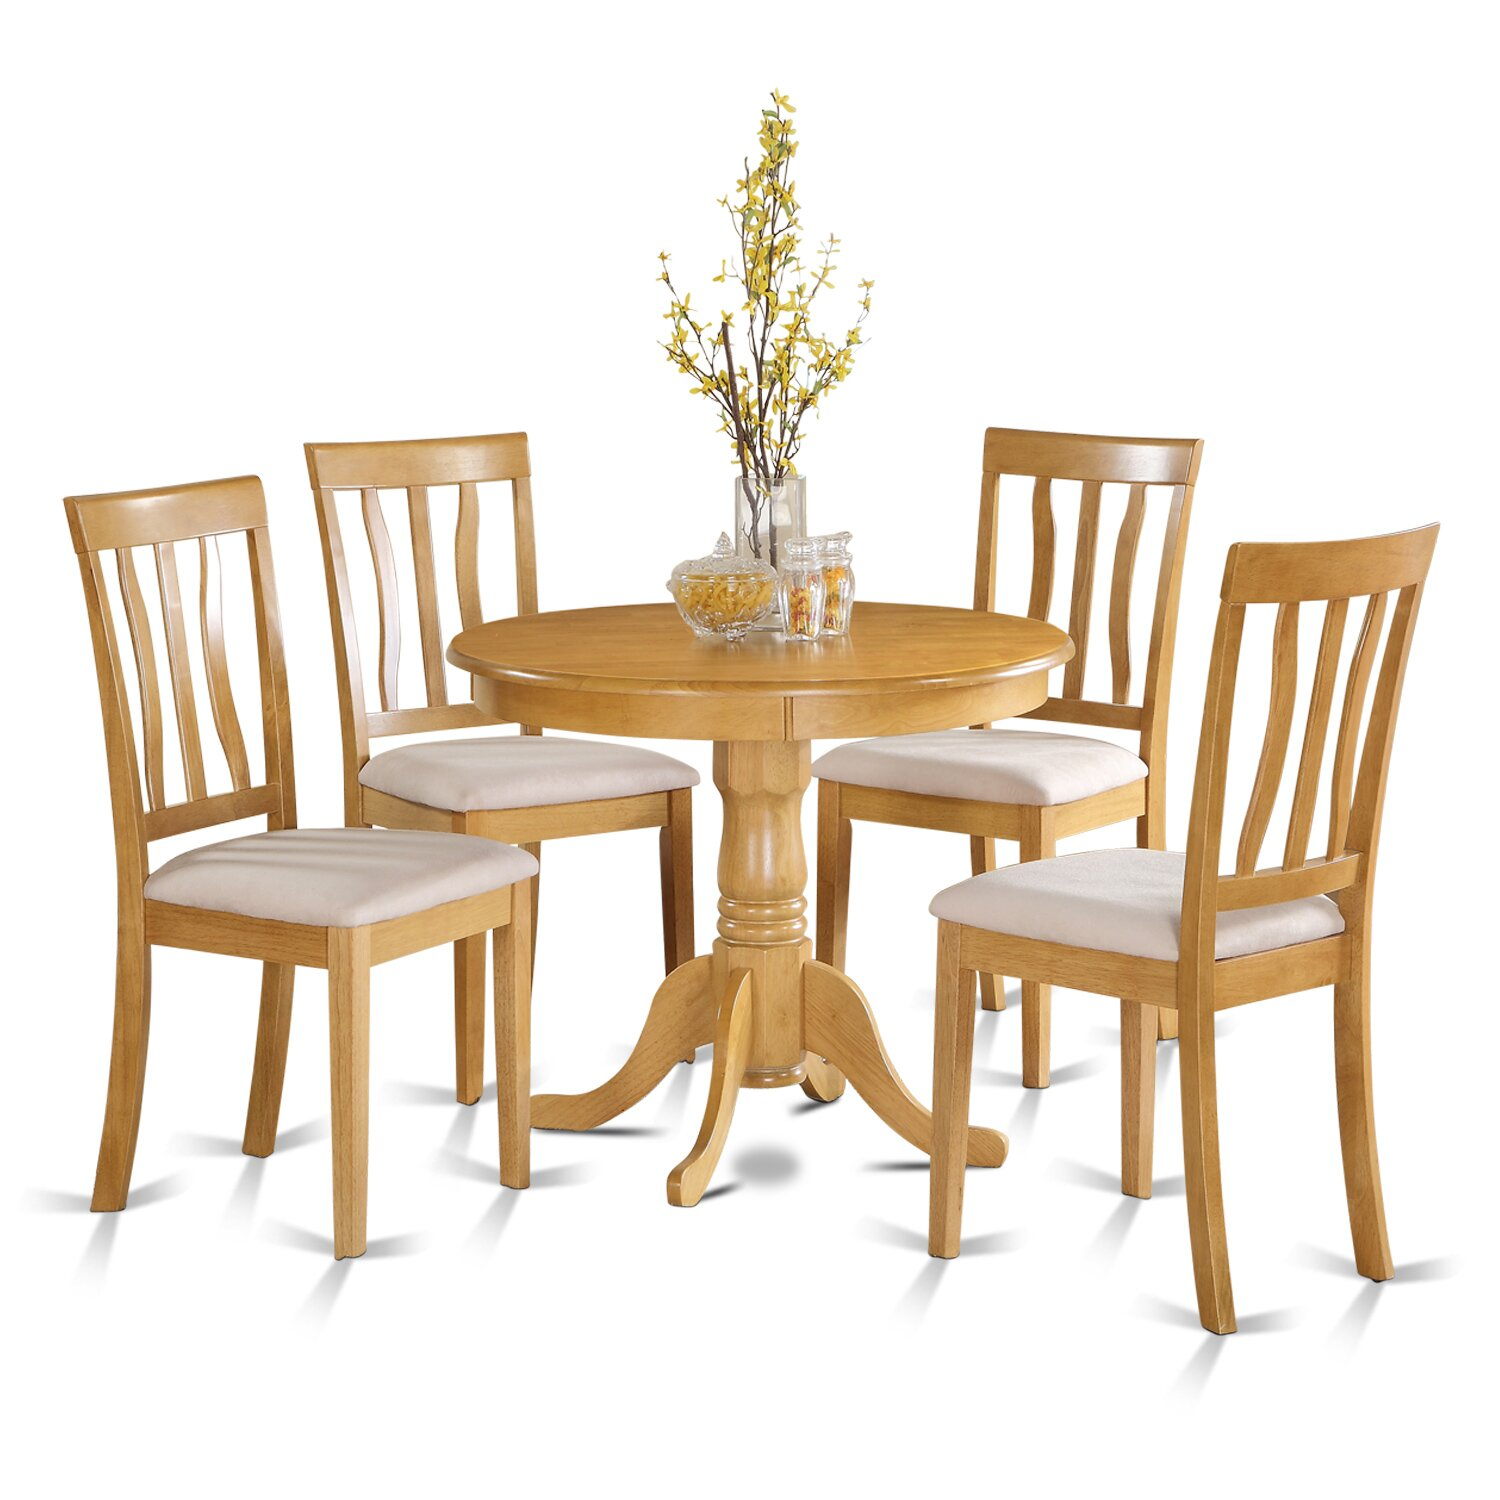 Wooden importers 5 piece dining set reviews wayfair for Small dining sets for 4